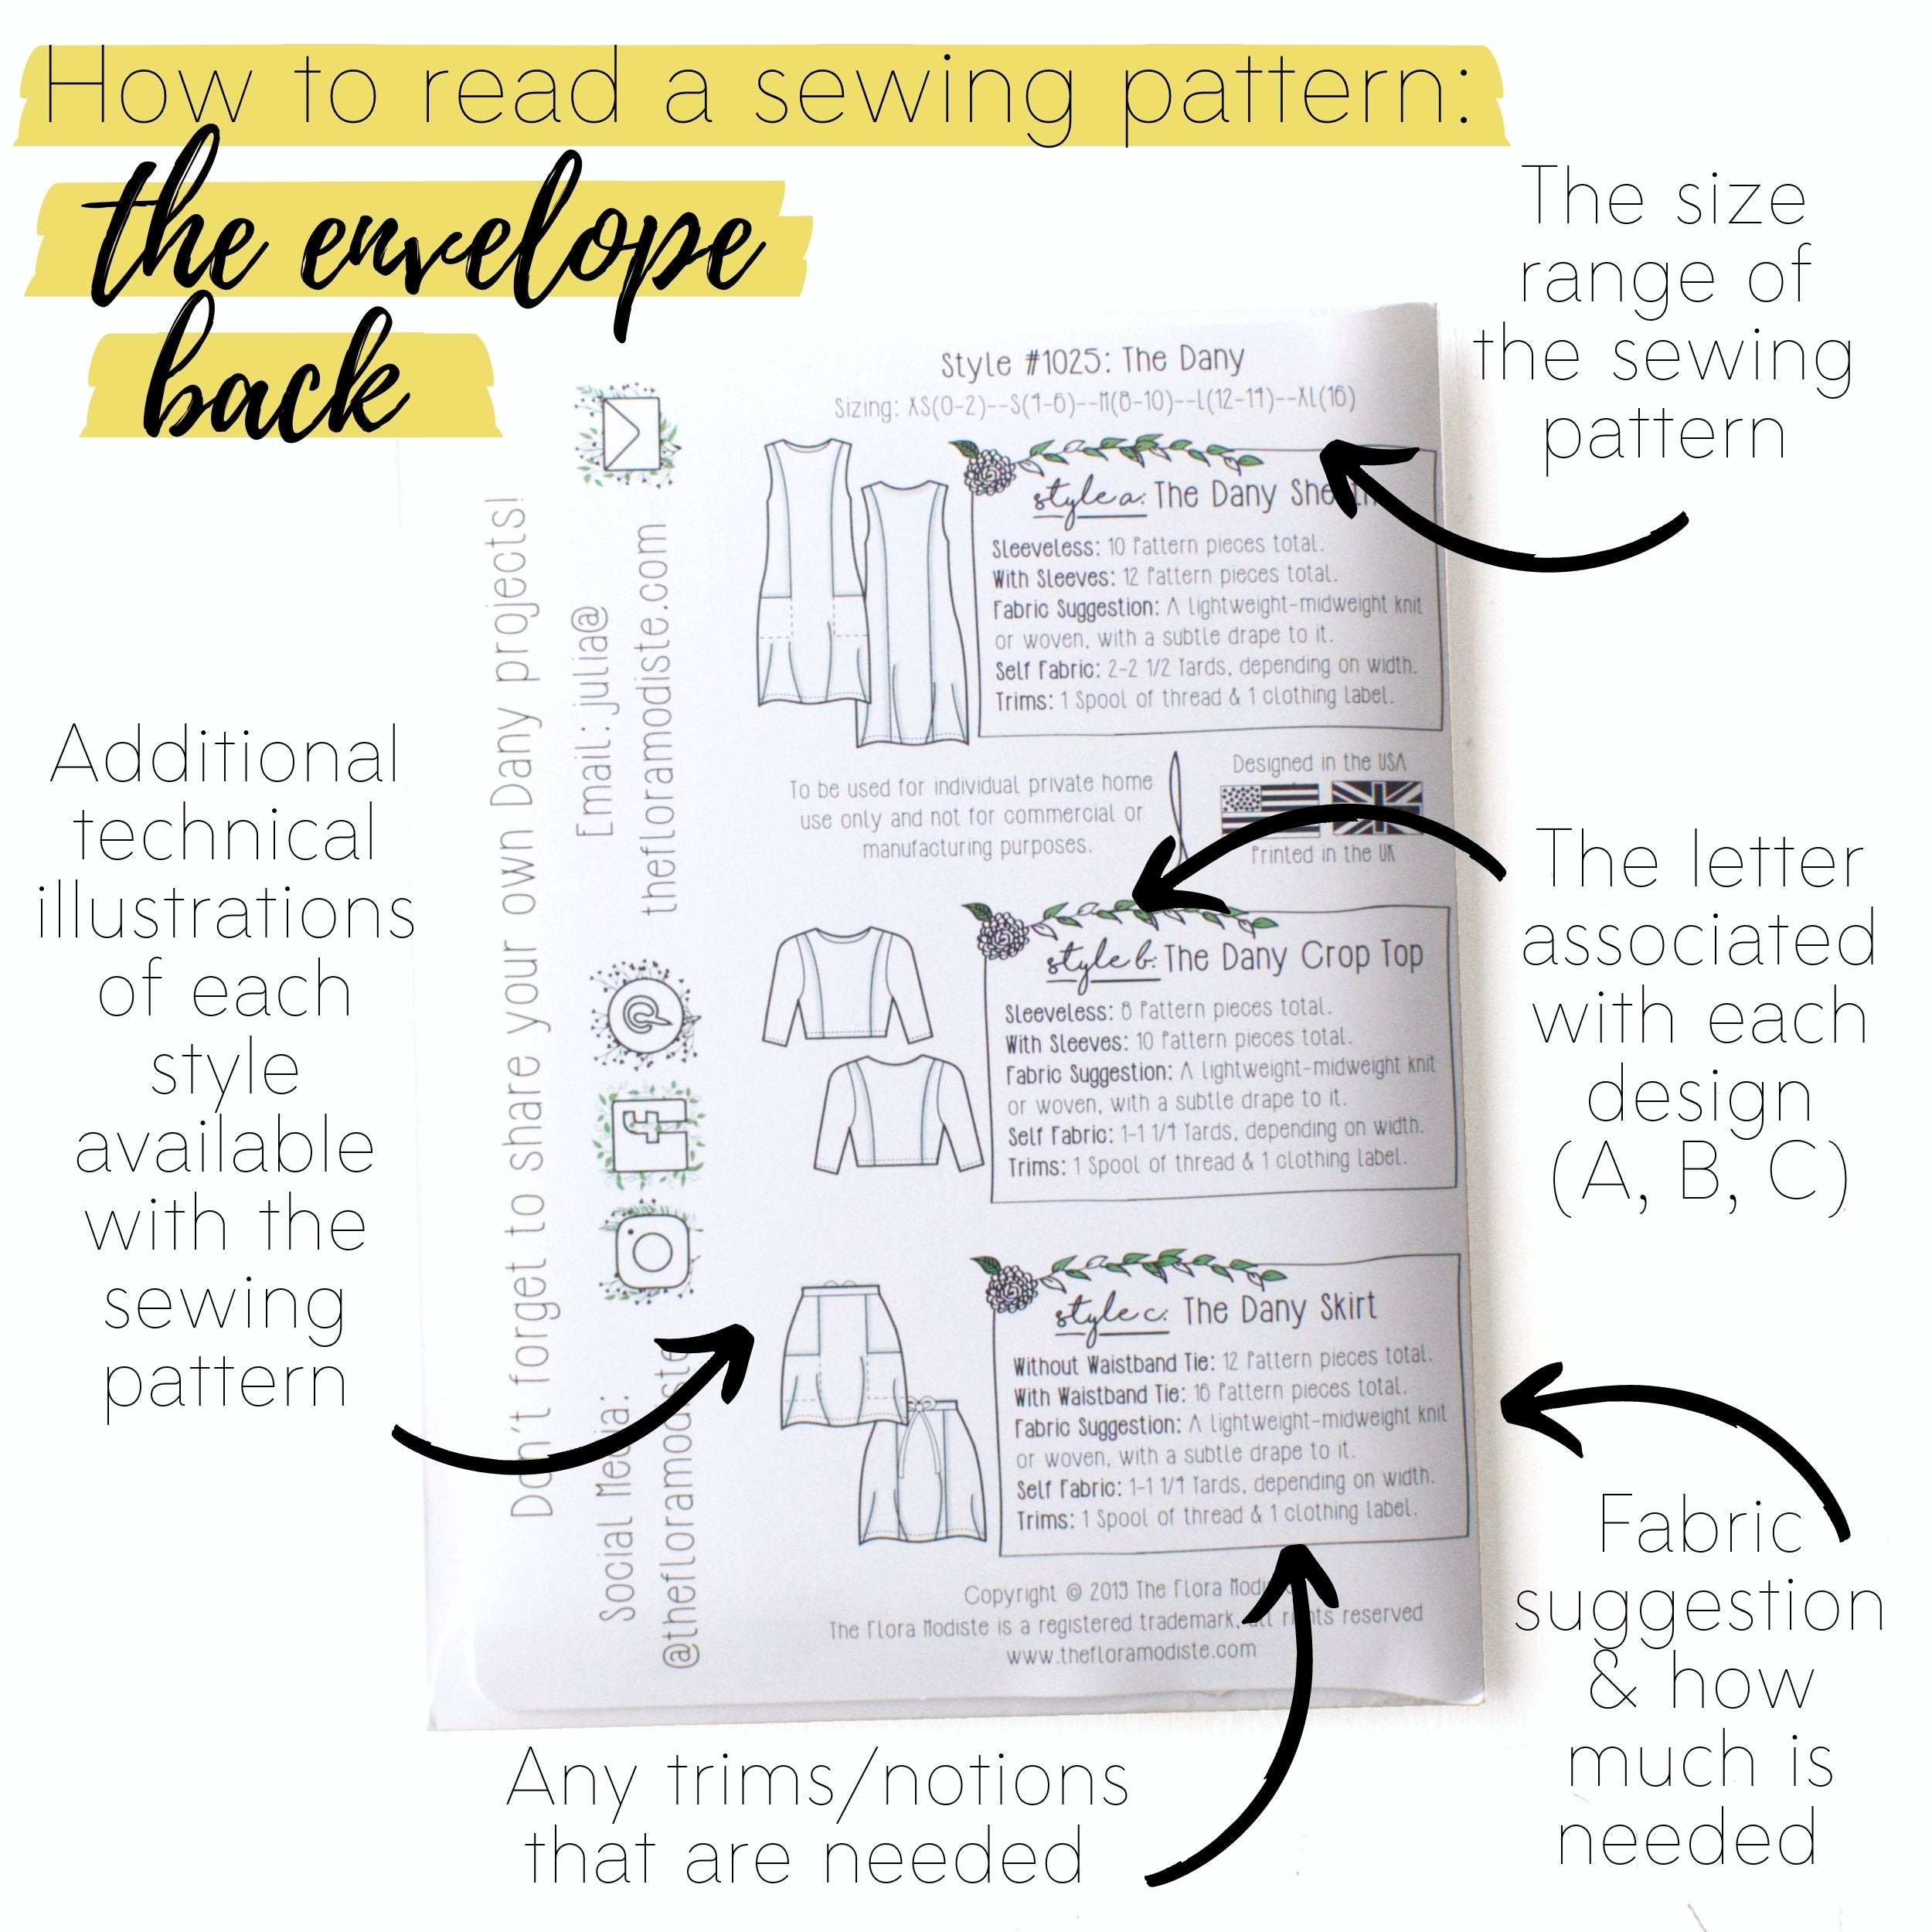 How to read a sewing pattern: The envelope back